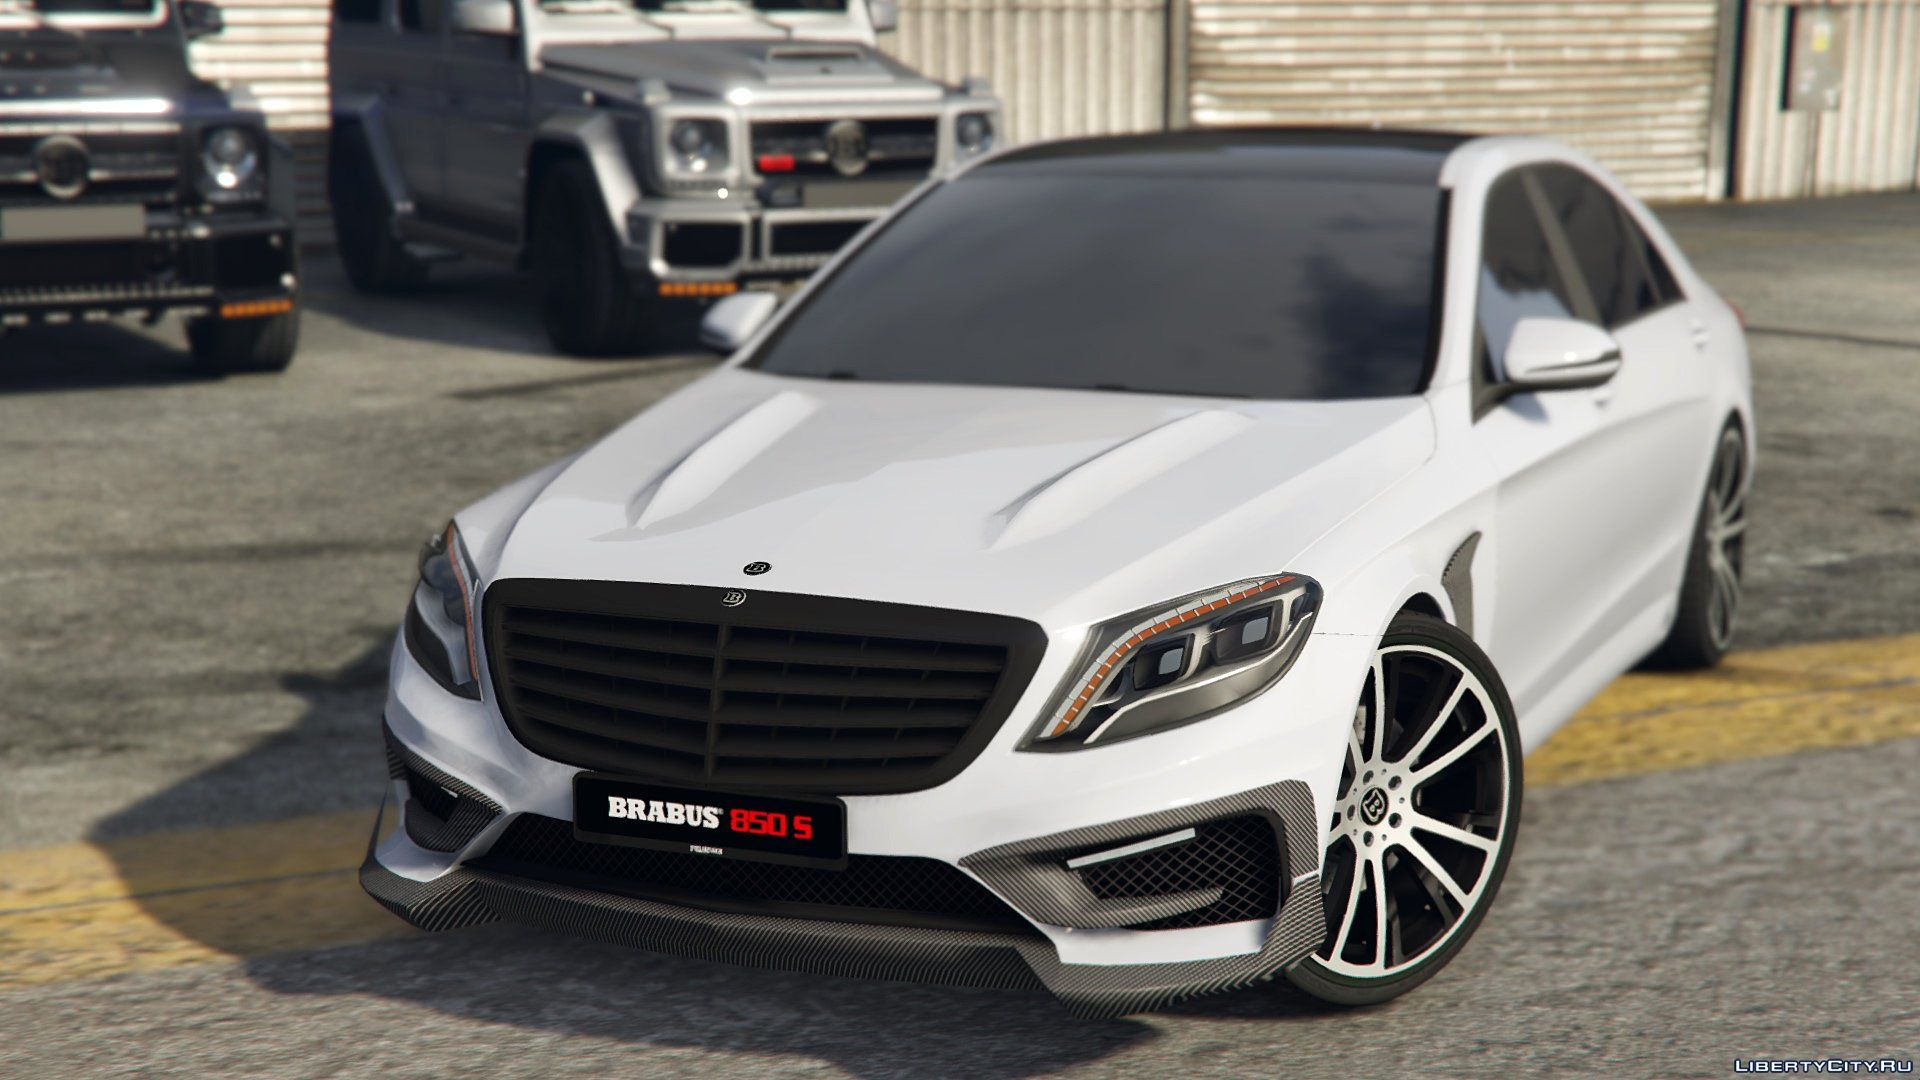 Mercedes benz brabus 850 s class replace 1 0 for gta 5 for Mercedes benz gta